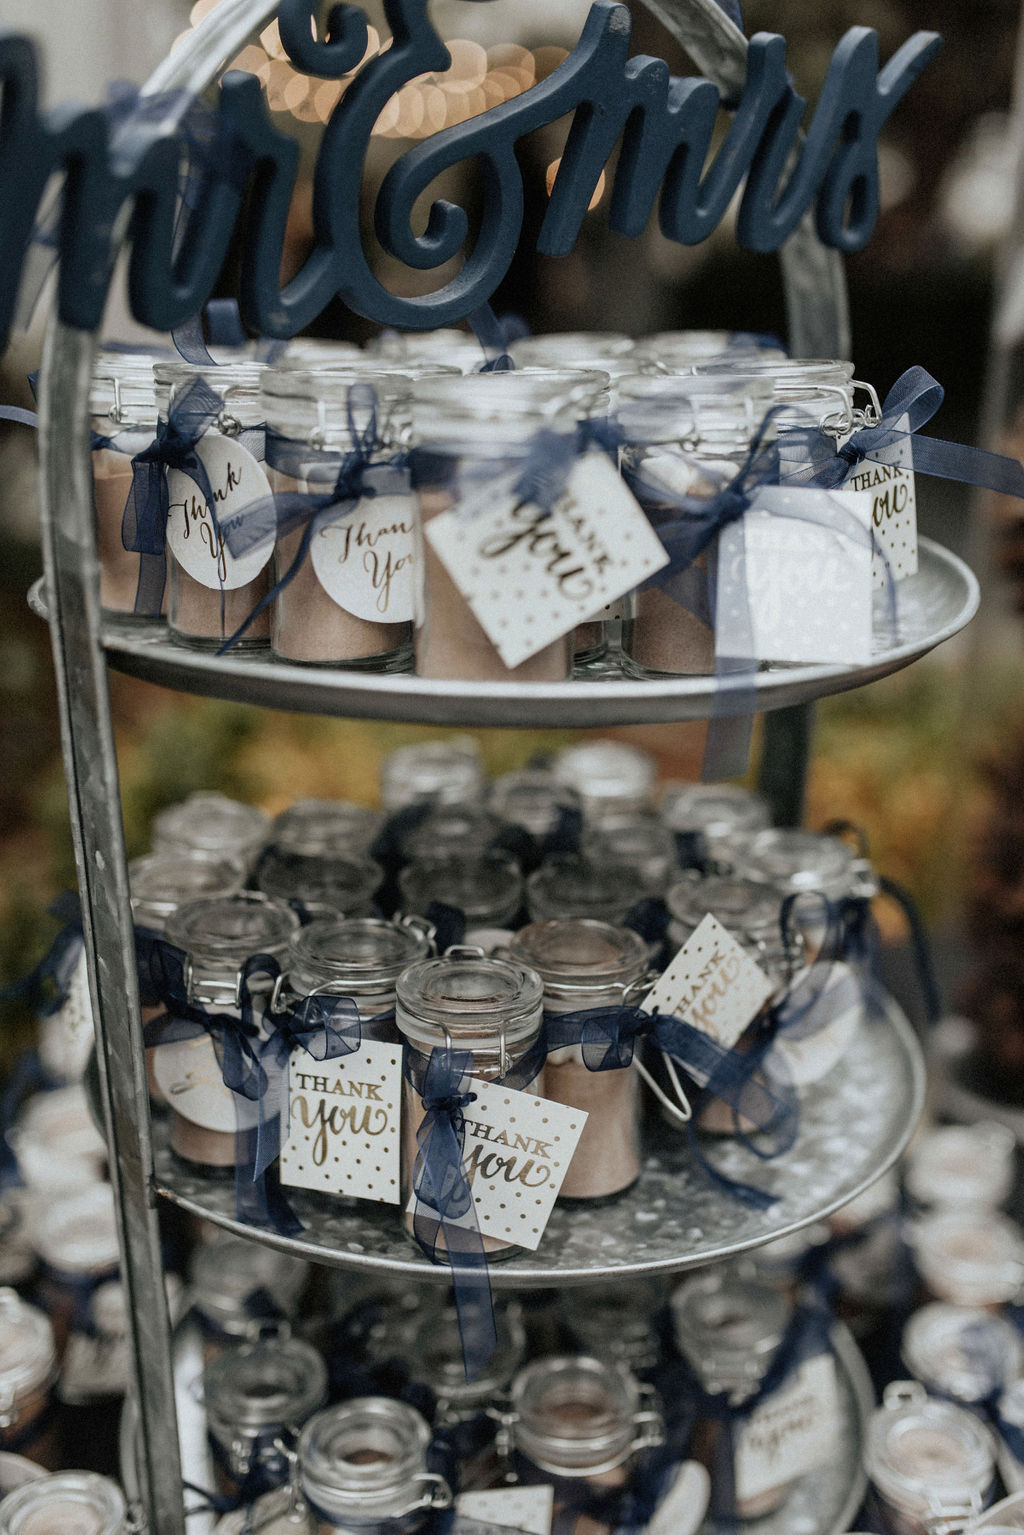 Hot chocolate wedding favors: Magical Winter Wedding by Meghan Melia Photography featured on Nashville Bride Guide!